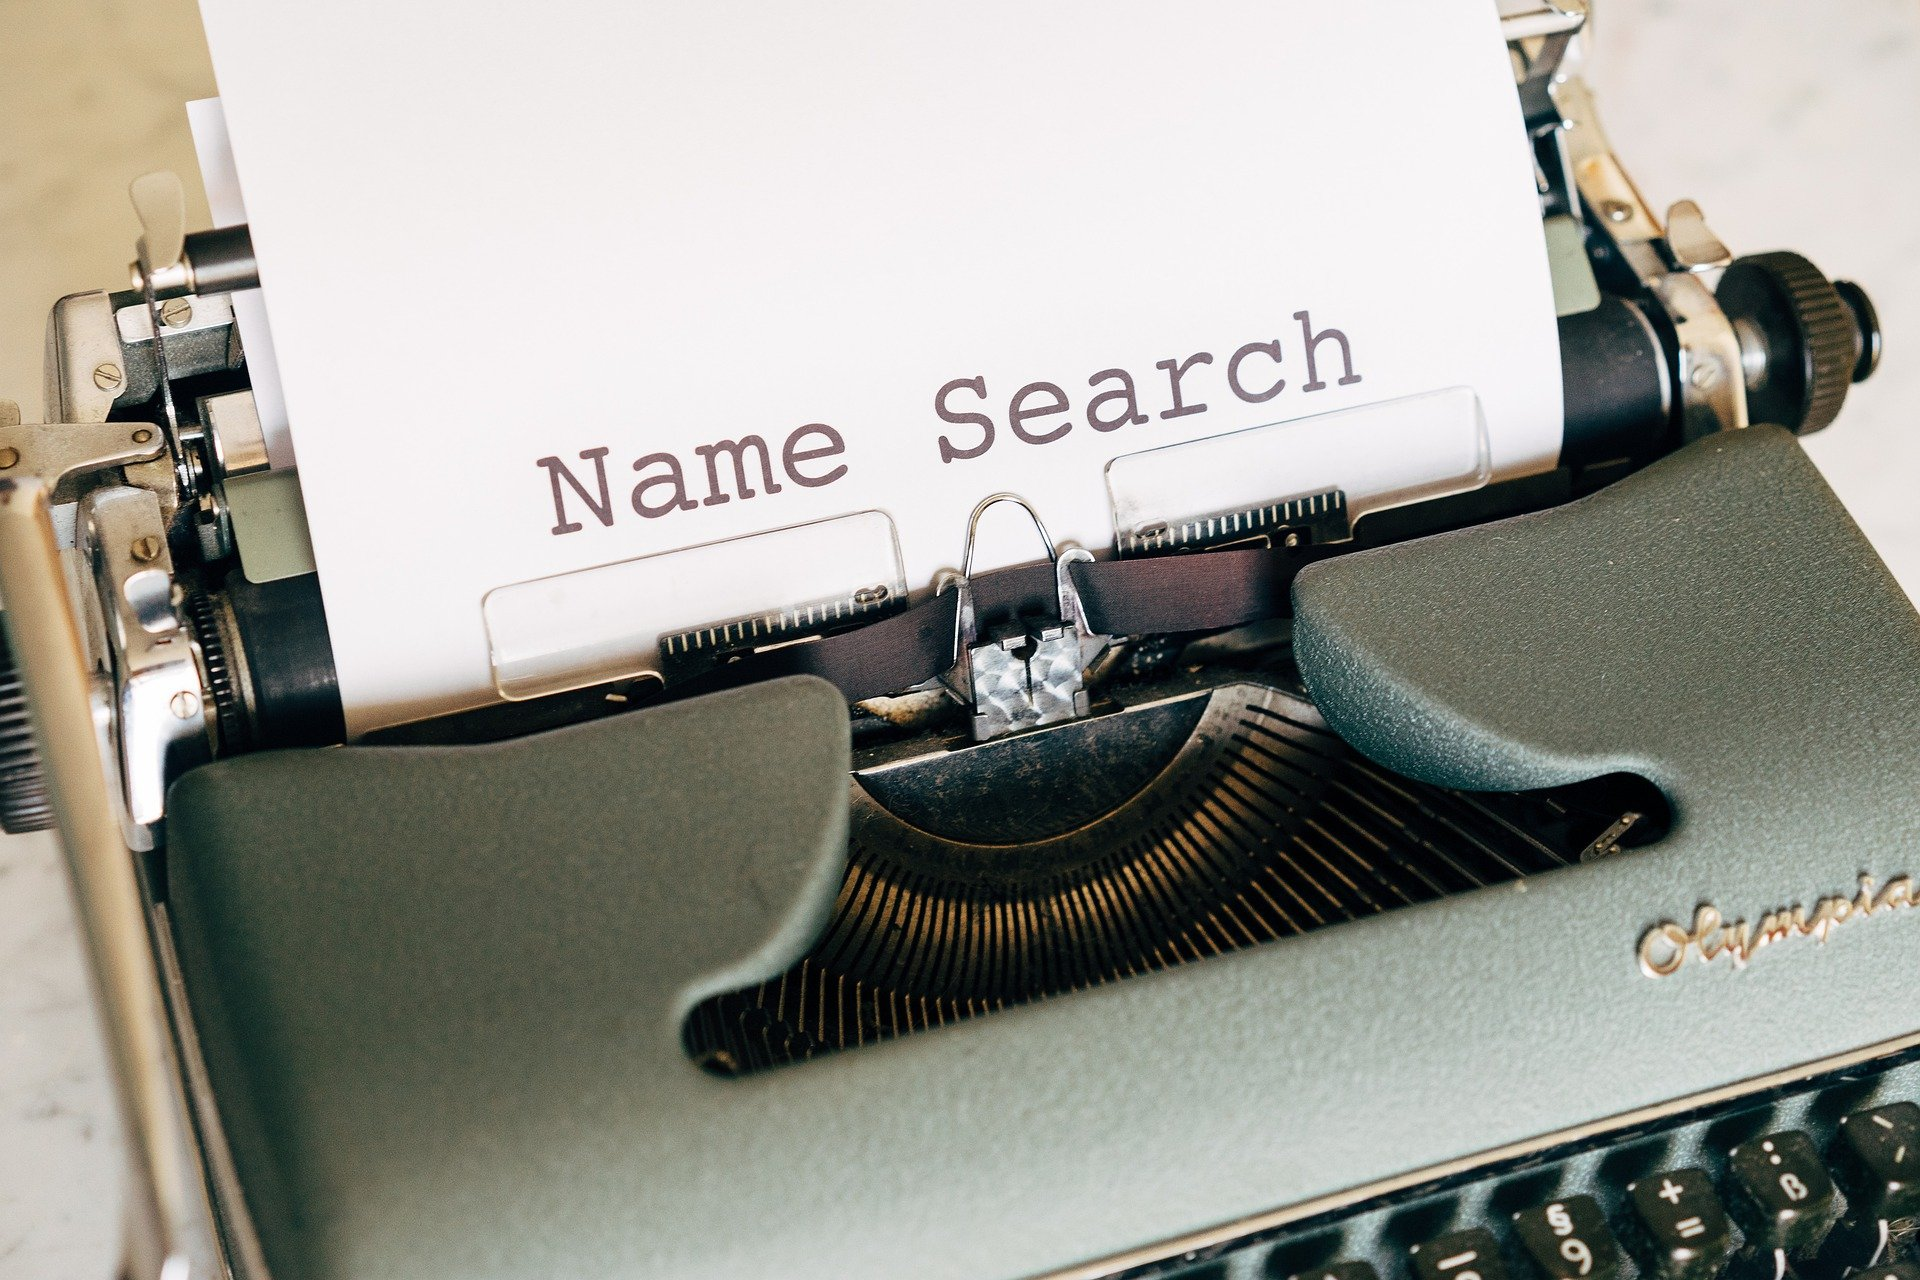 Name domain website search | Source: Pixabay